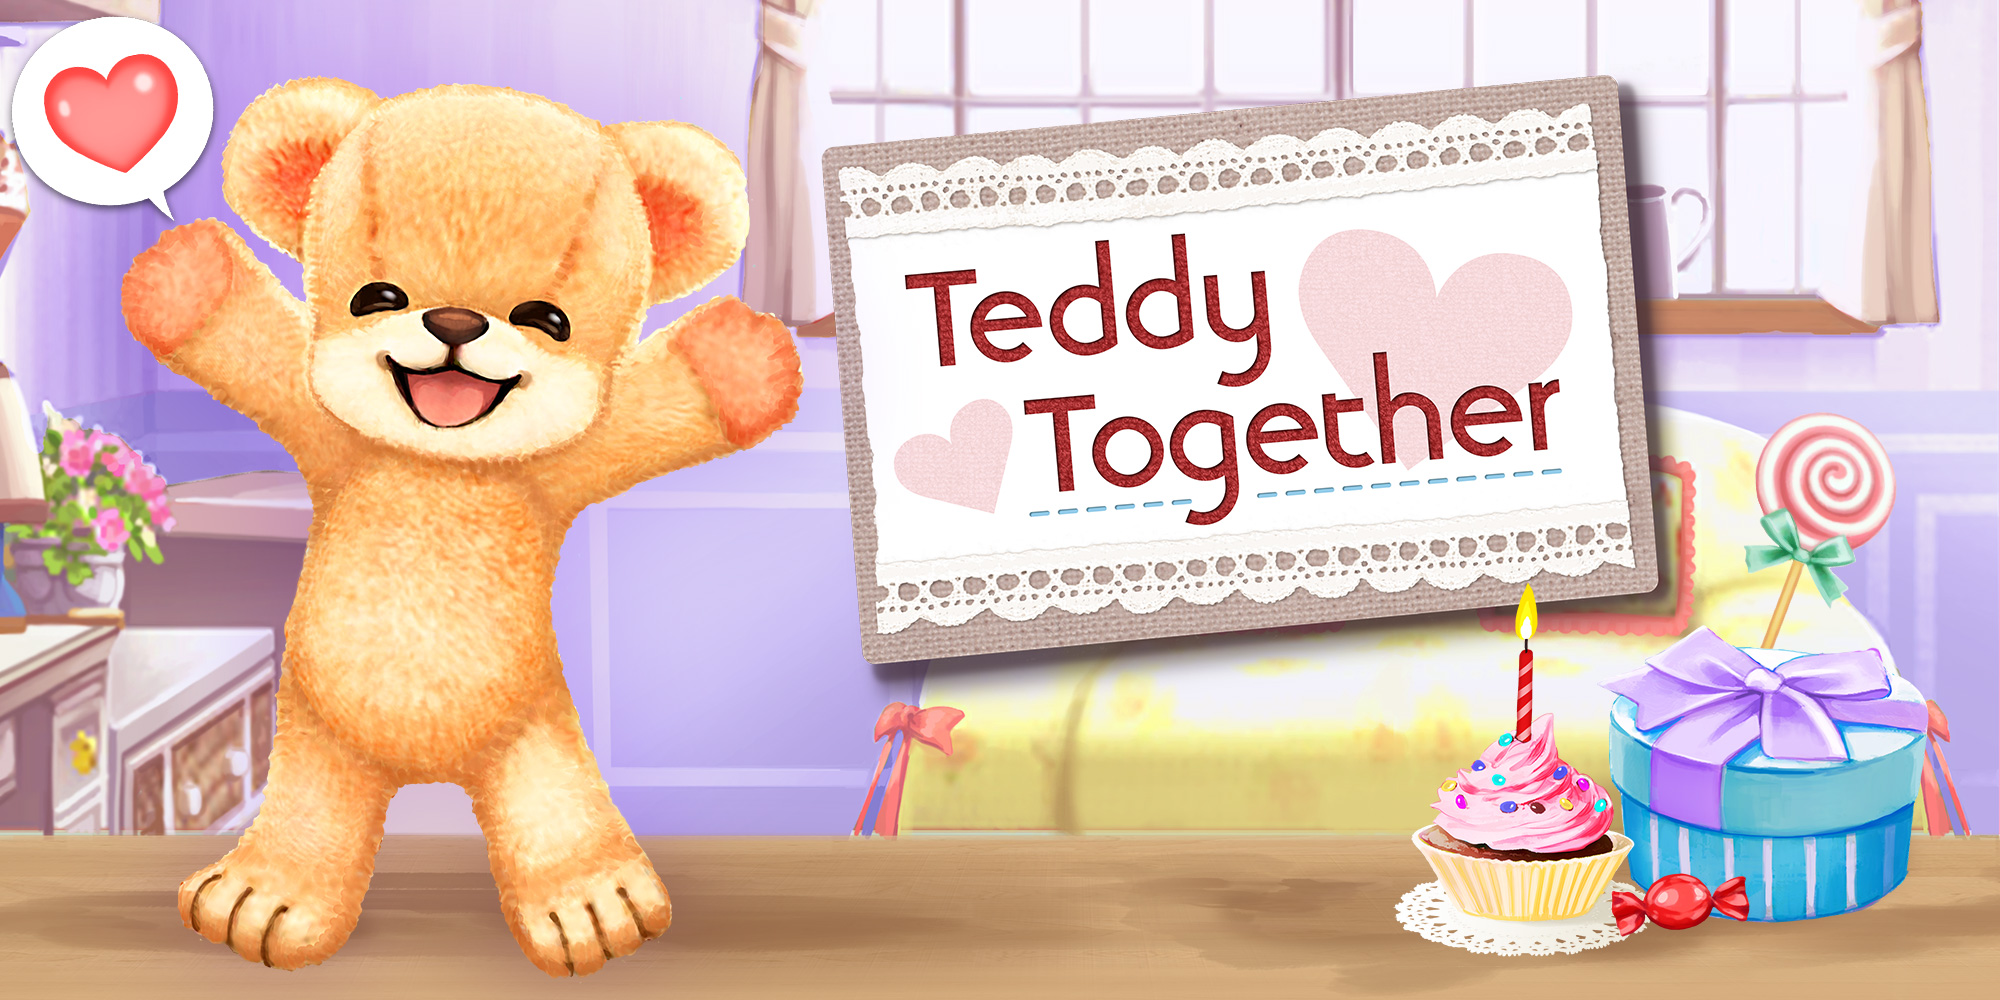 Teddy Together